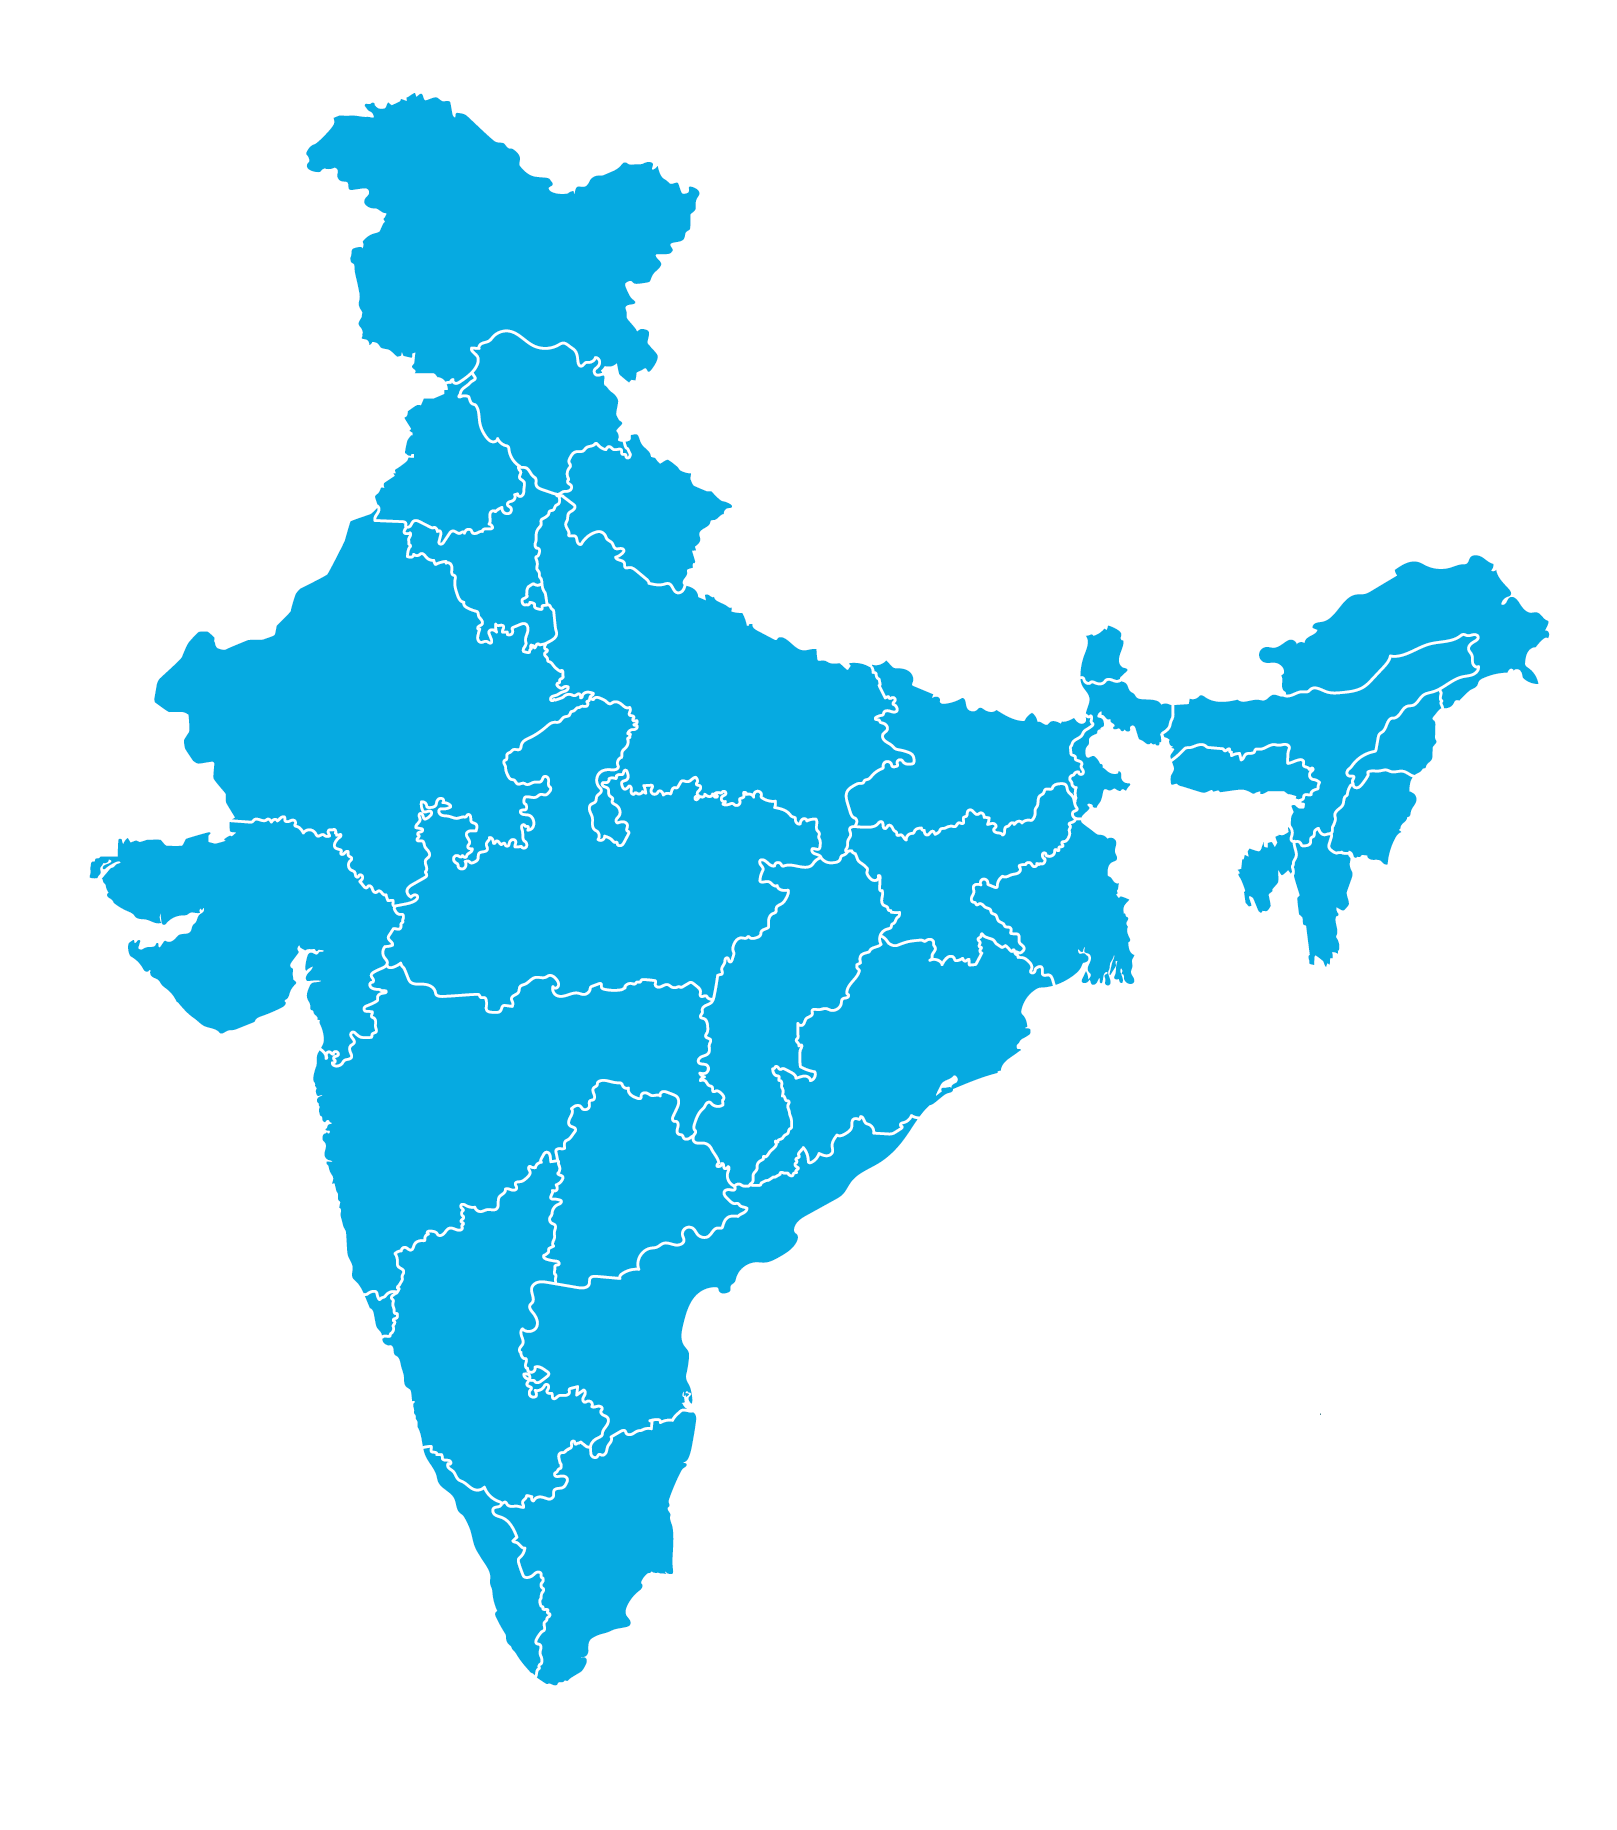 India_Map_Blue